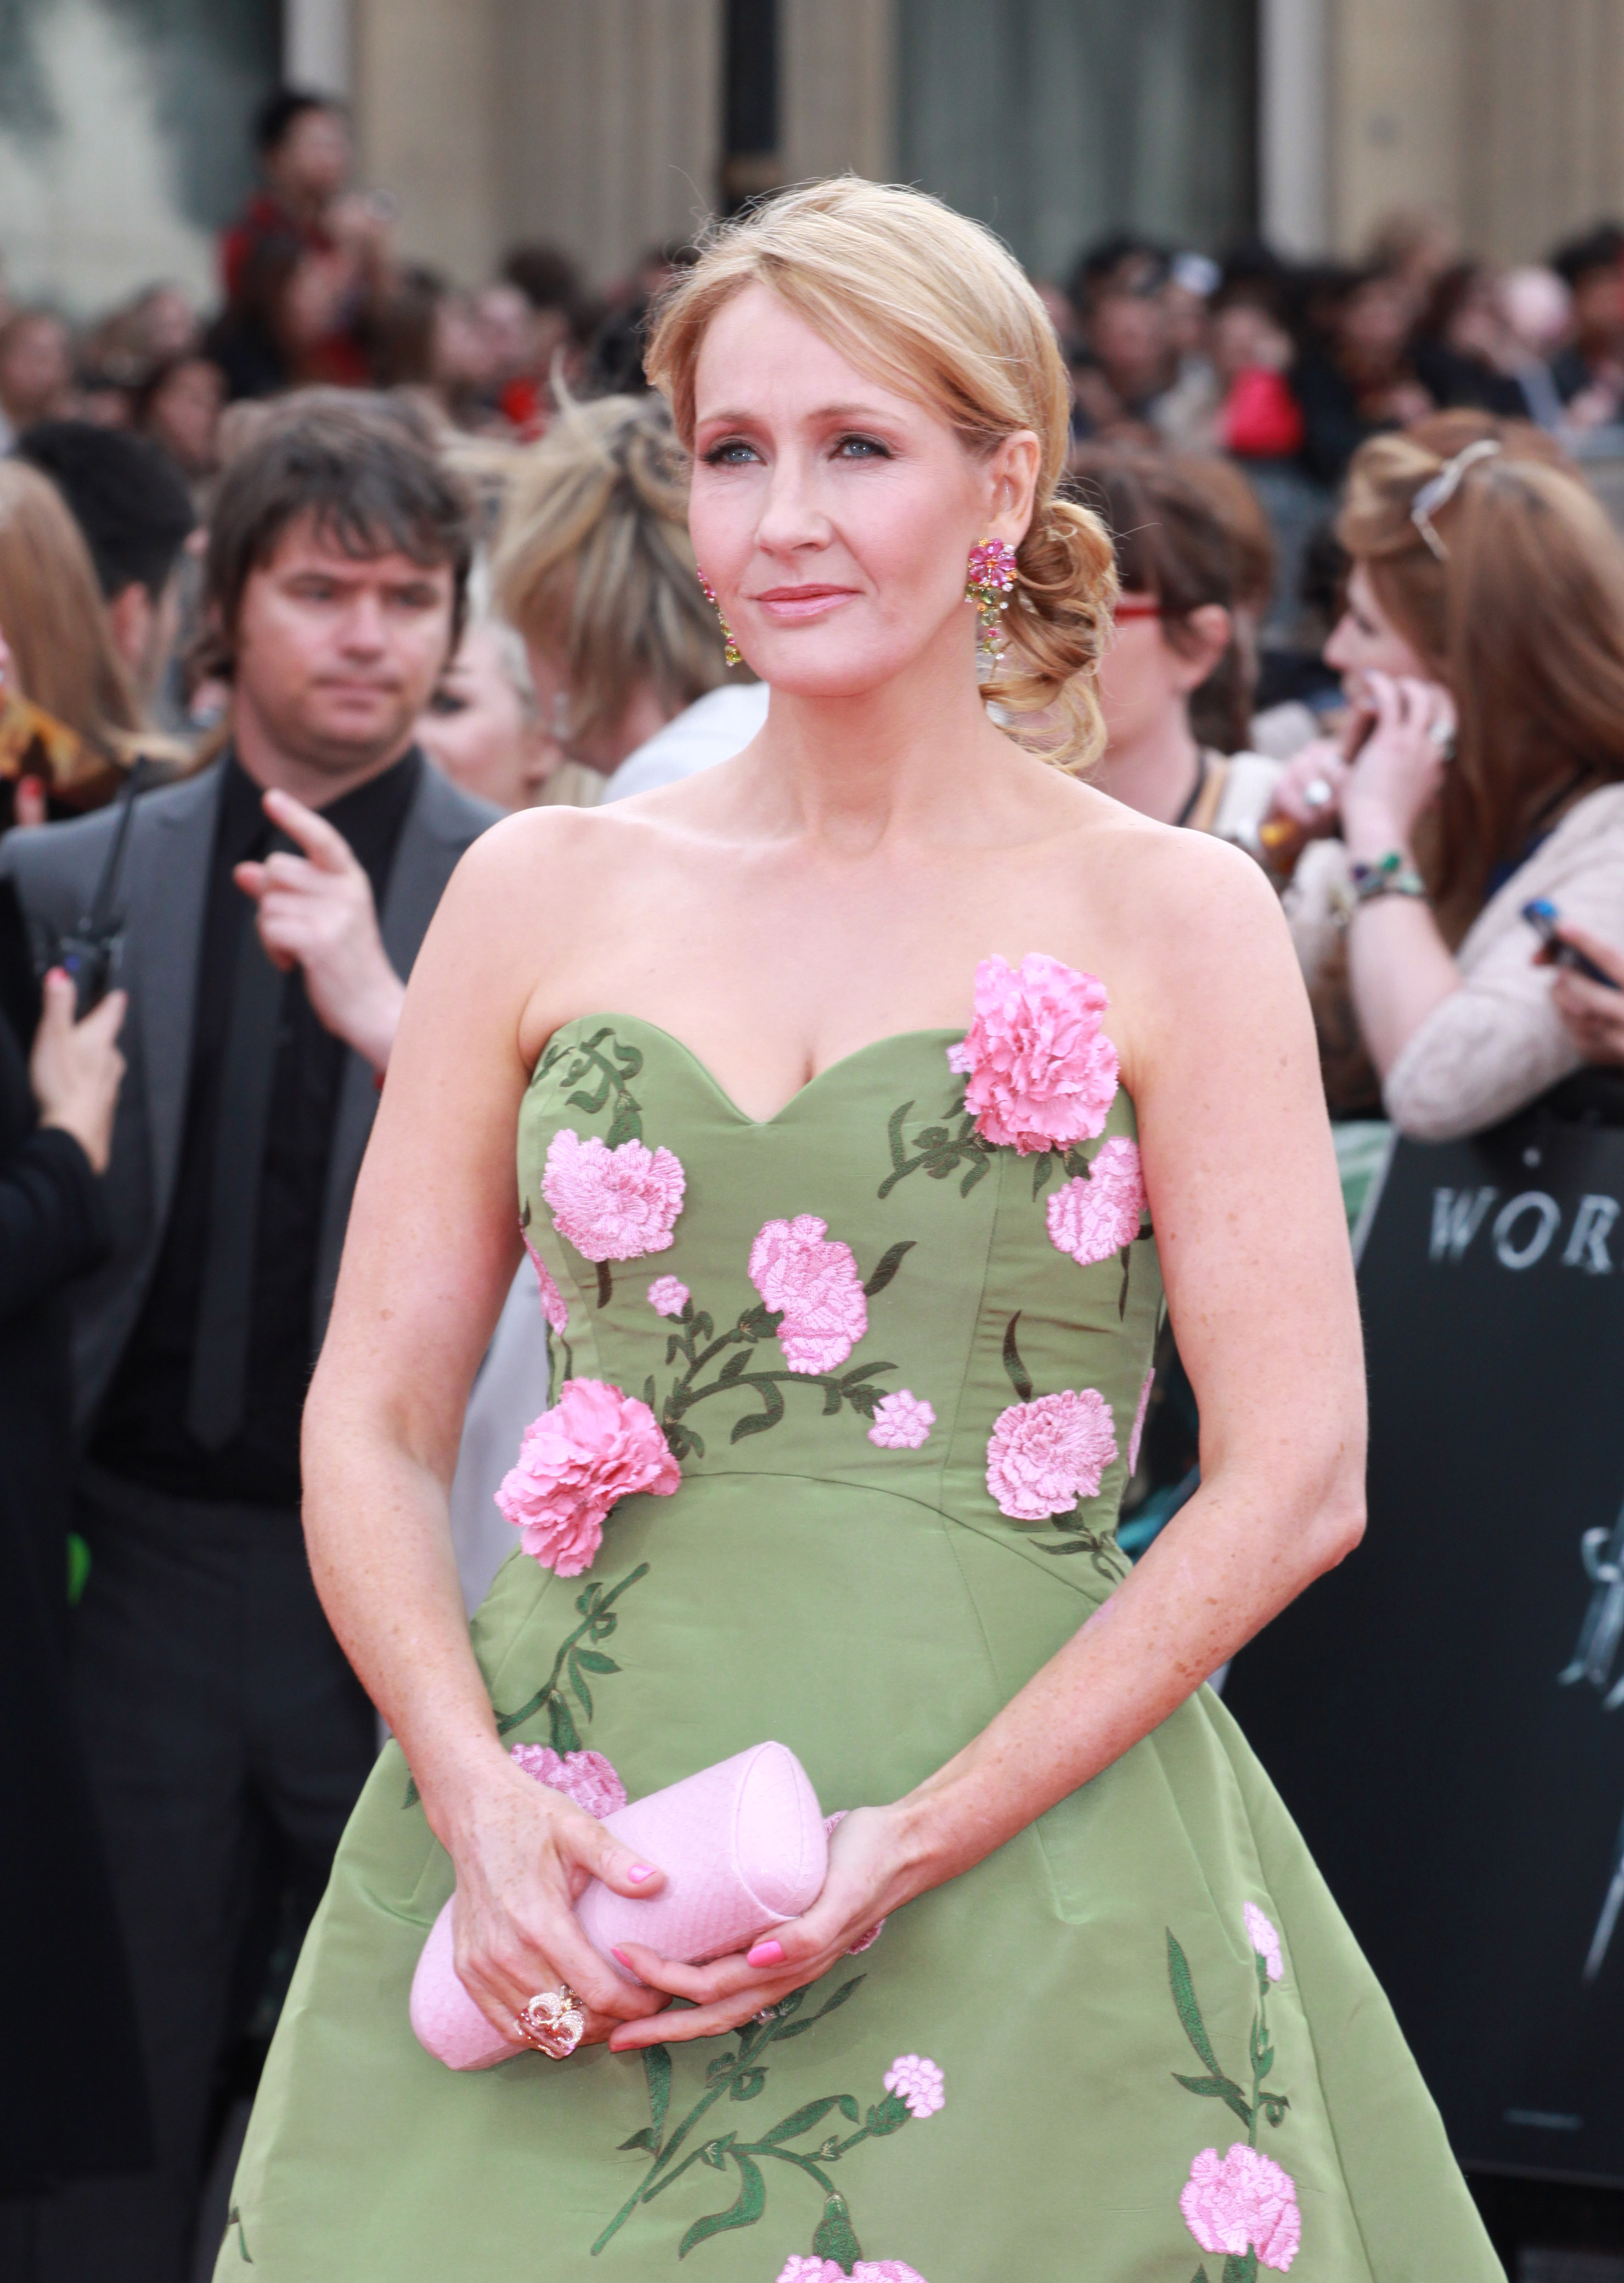 J.K. Rowling                  'Harry Potter and The Deathly Hallows - Part 2' World Premiere - Arrivals                  London, England - 07.07.11                                    Featuring: J.K. Rowling                  Where: London, United Kingdom                  When: 07 Jul 2011                  Credit: WENN